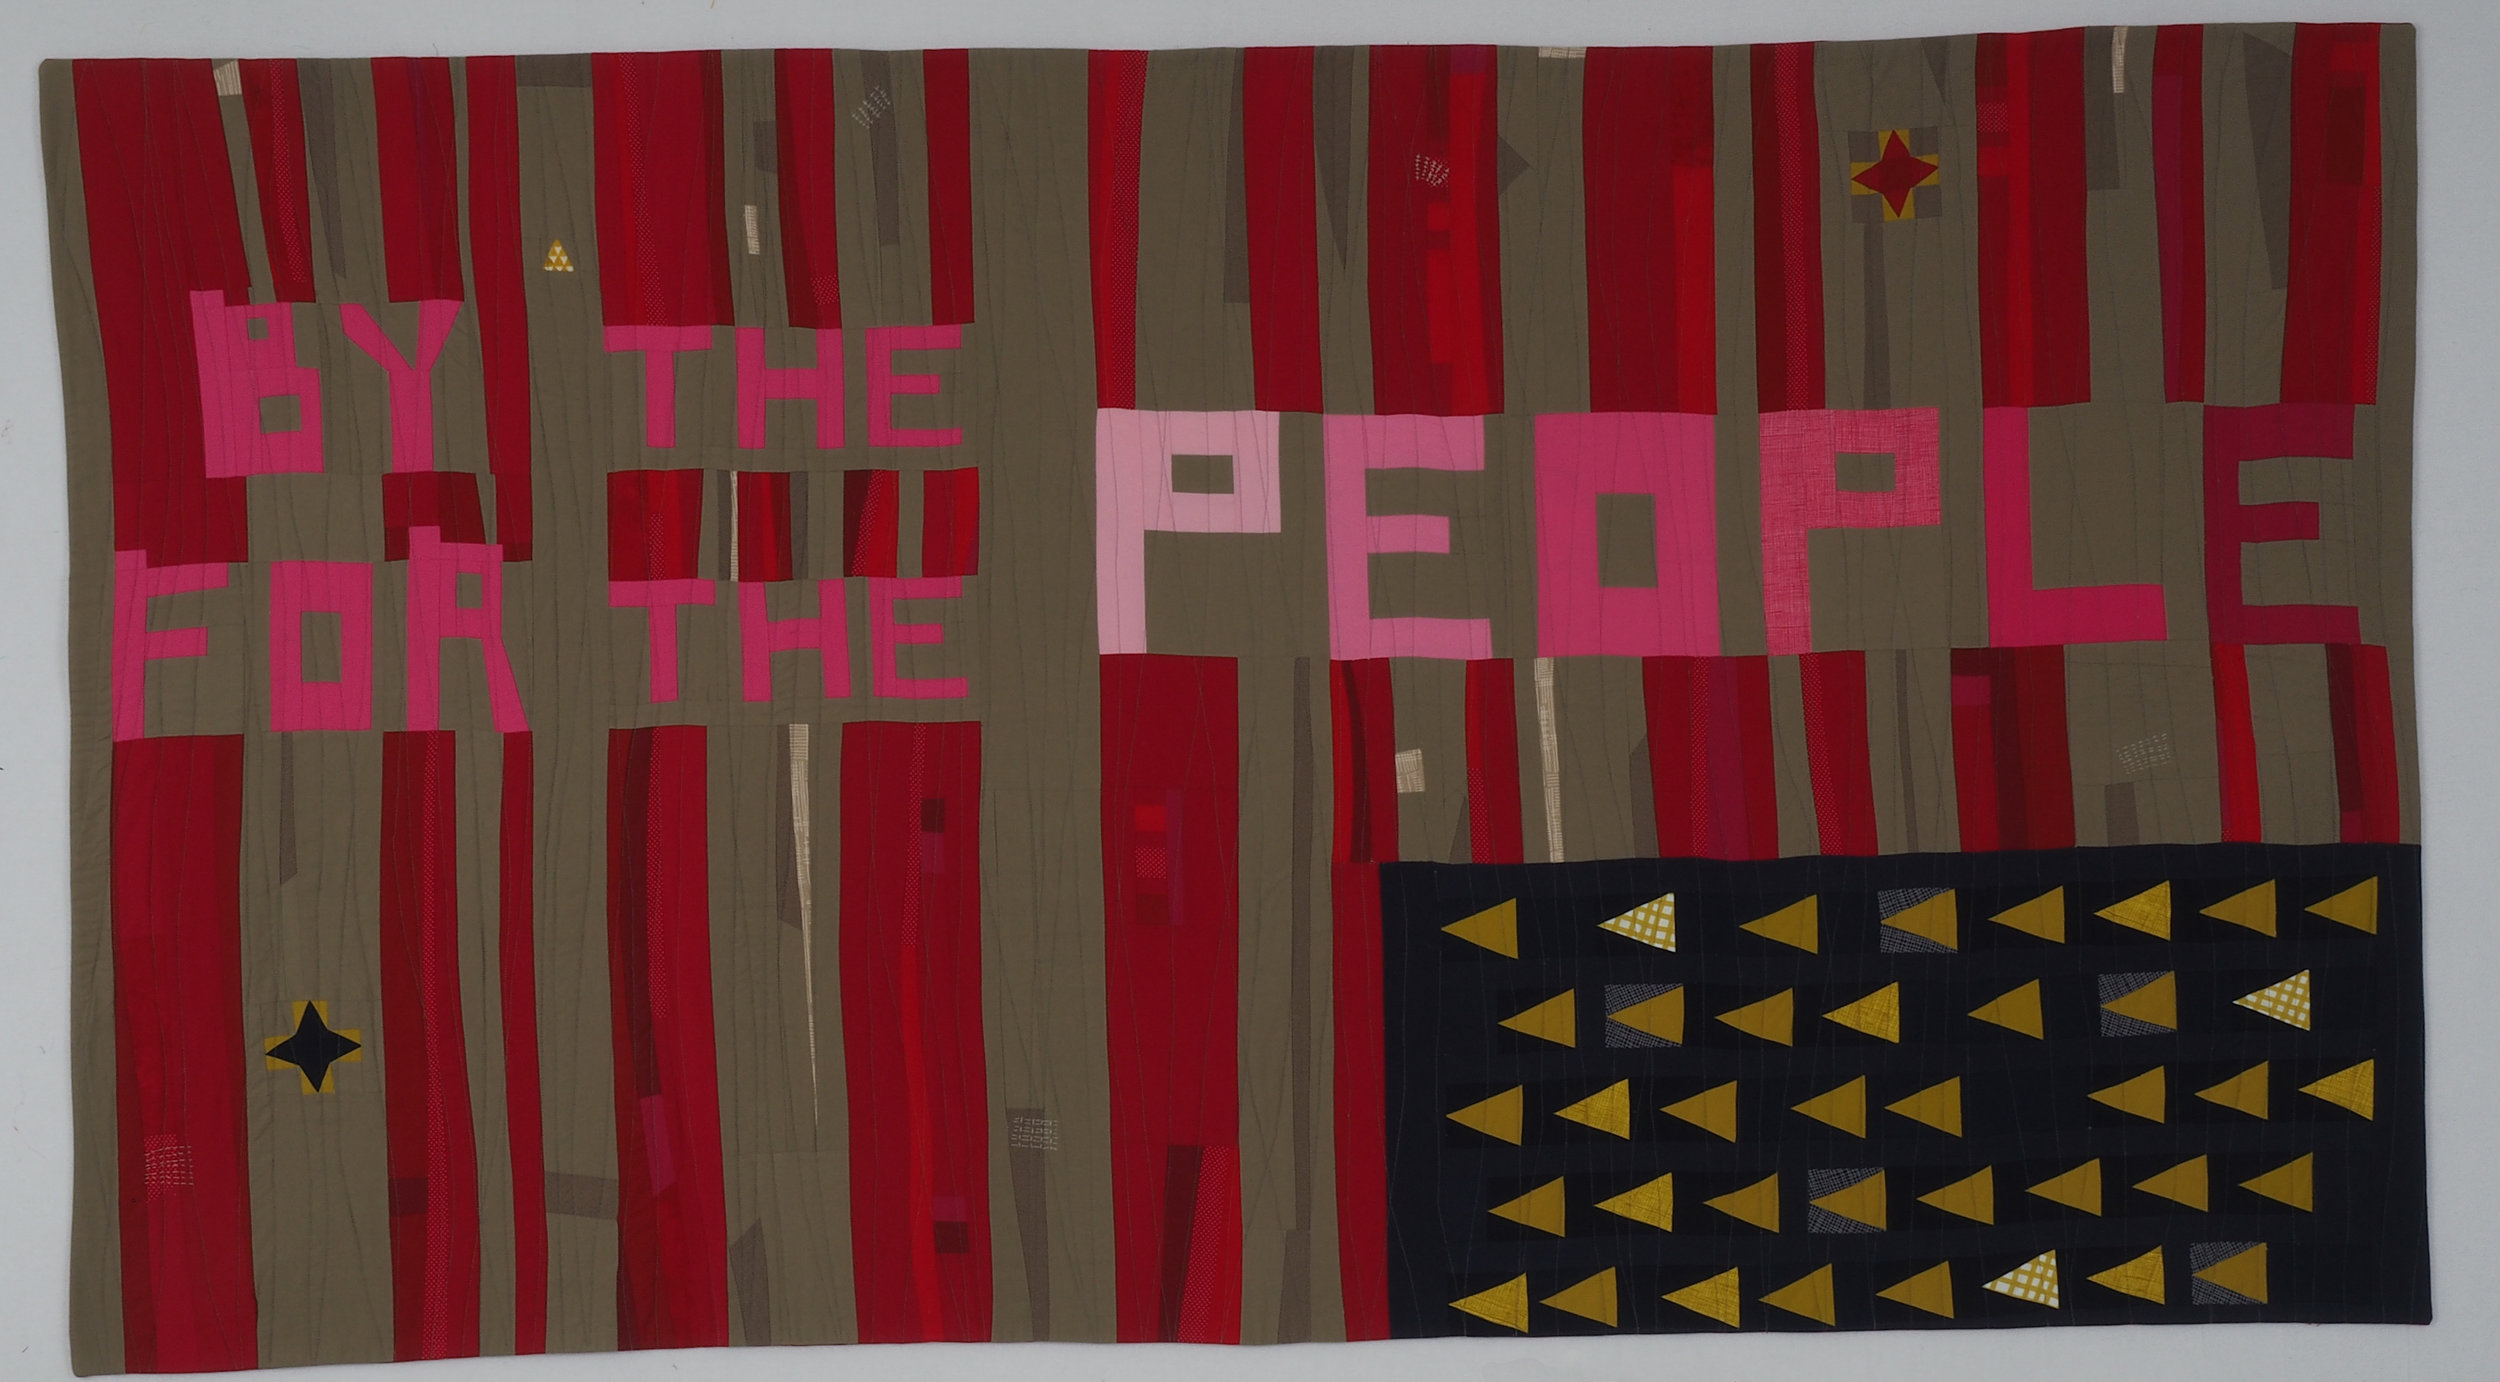 Power to the People by Tamara King